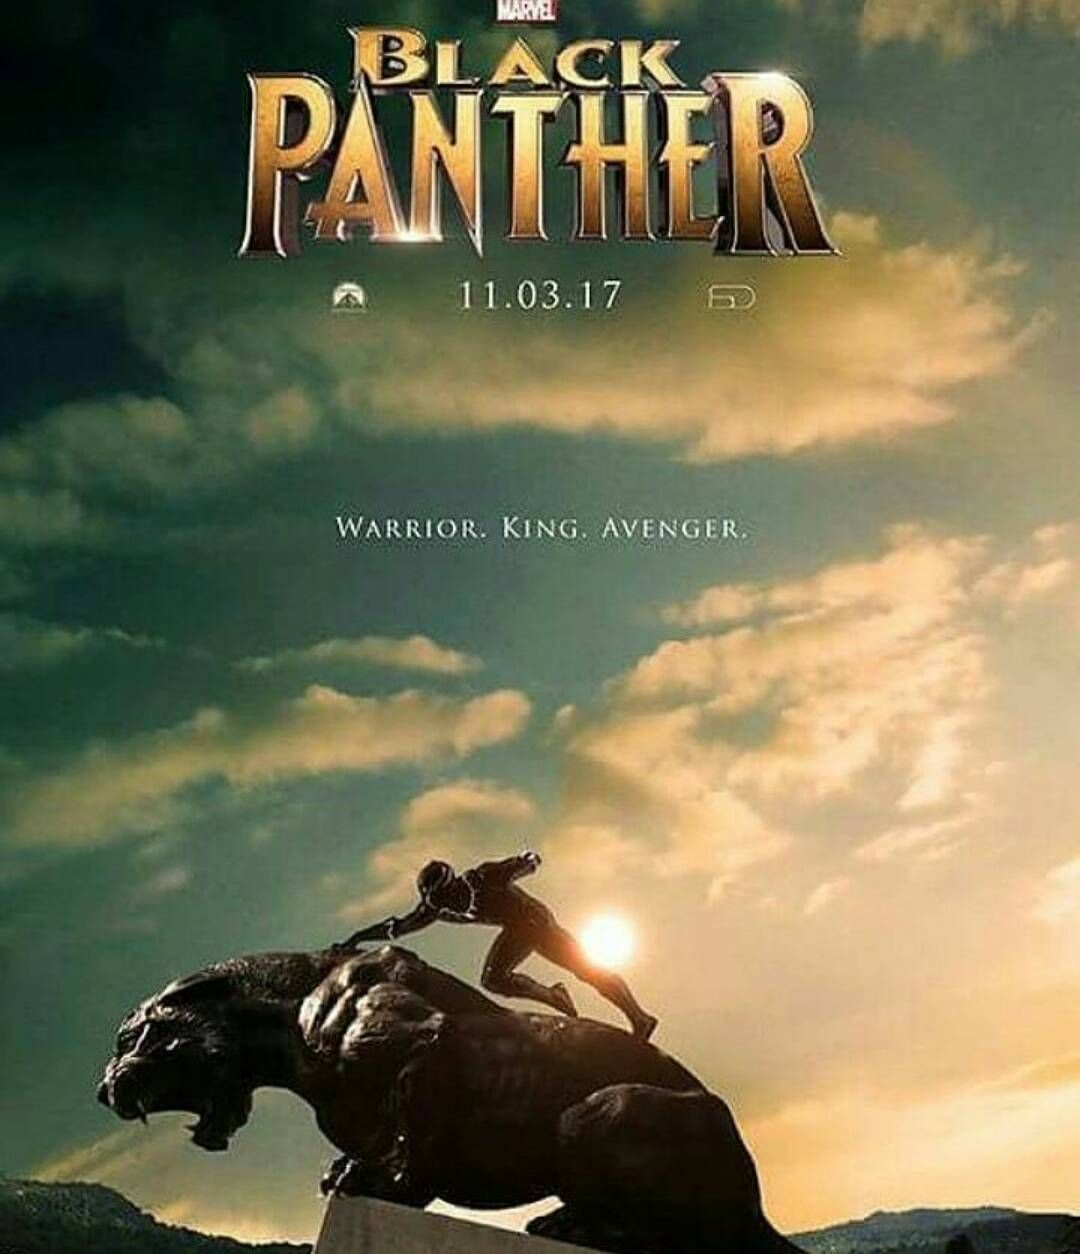 Free Comic Book Day May 2018: Awesome Fanmade Black Panther Poster! Im So Hyped For This